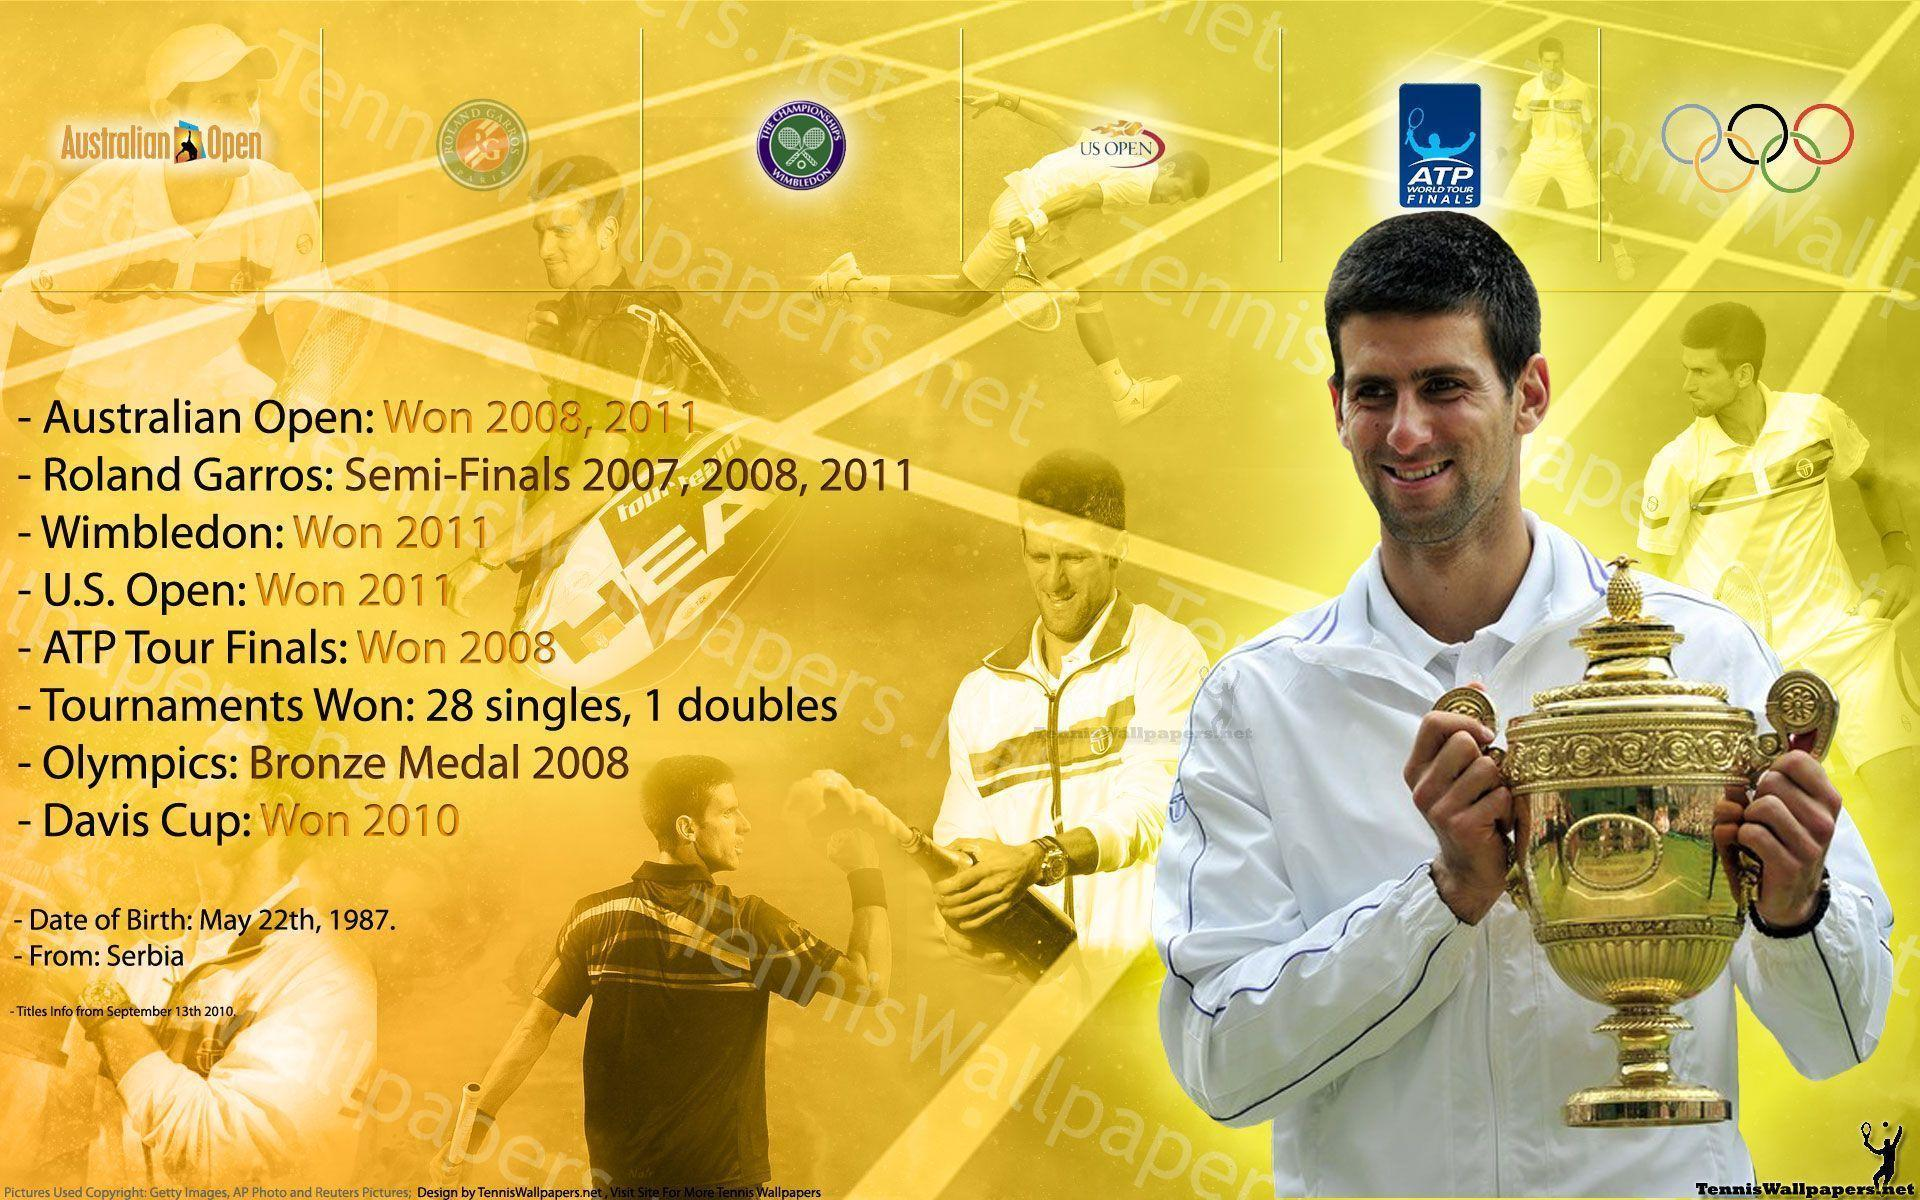 Novak Djokovic Career Info Widescreen Wallpaper - Tennis Wallpapers